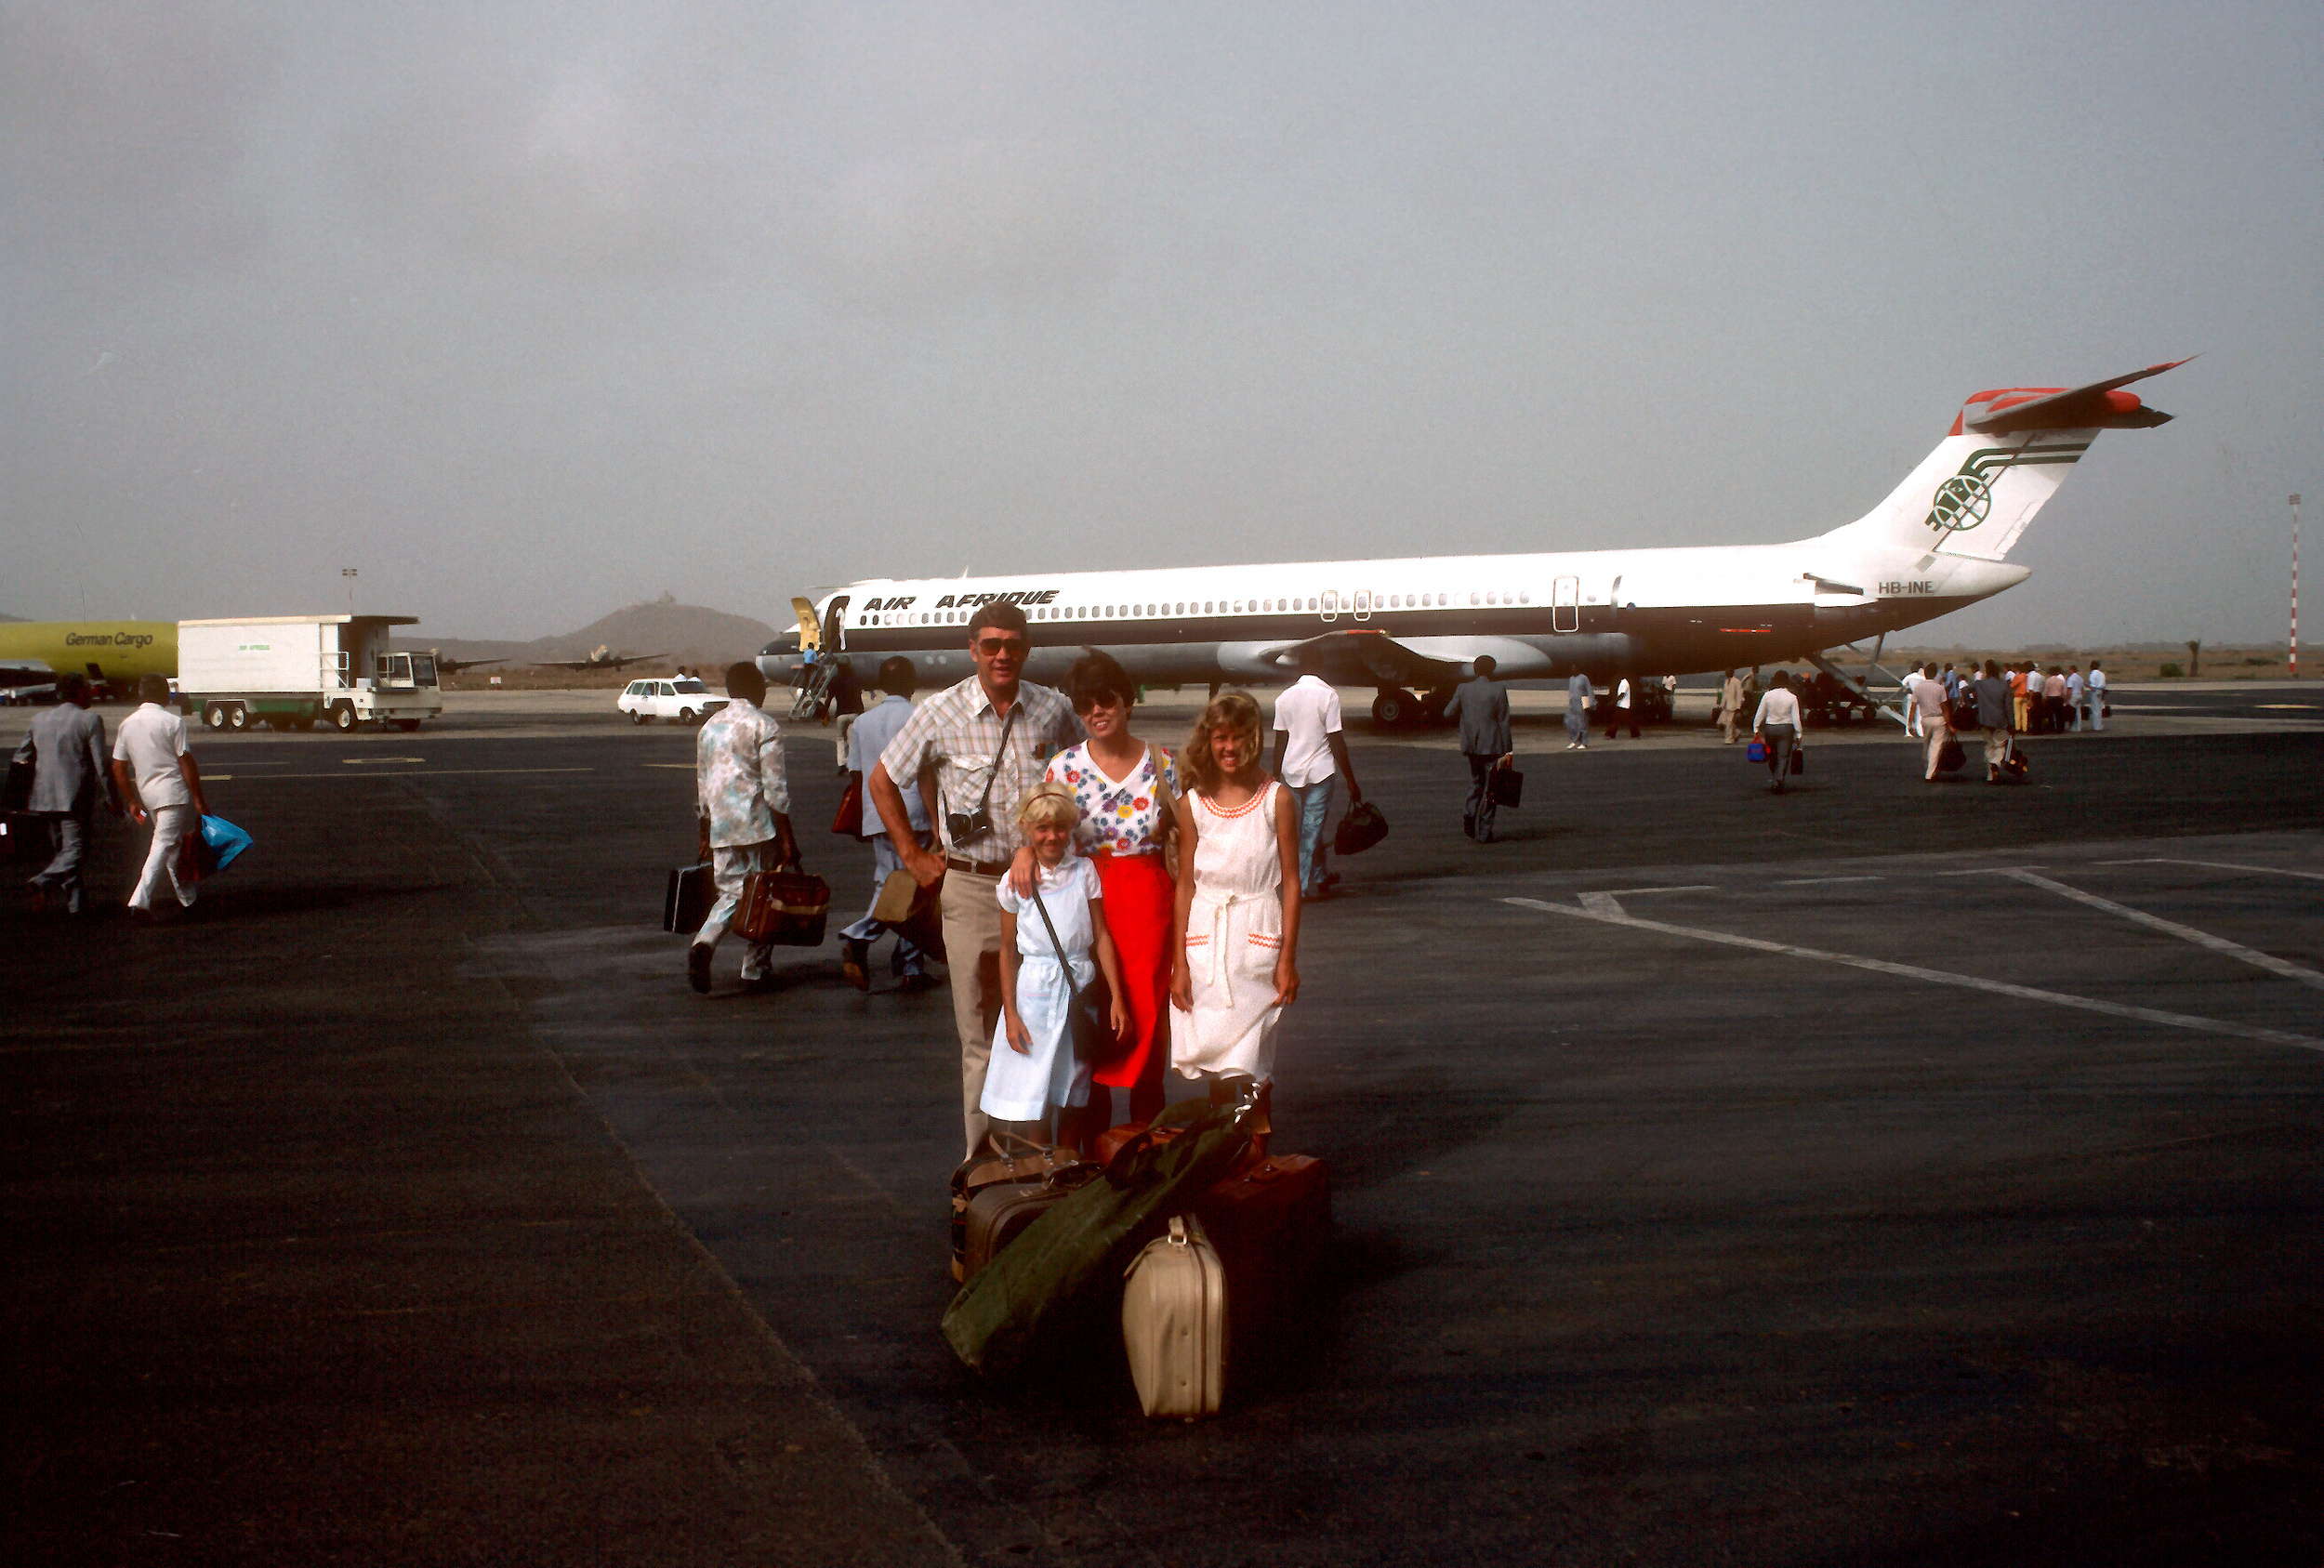 Arrival in Africa